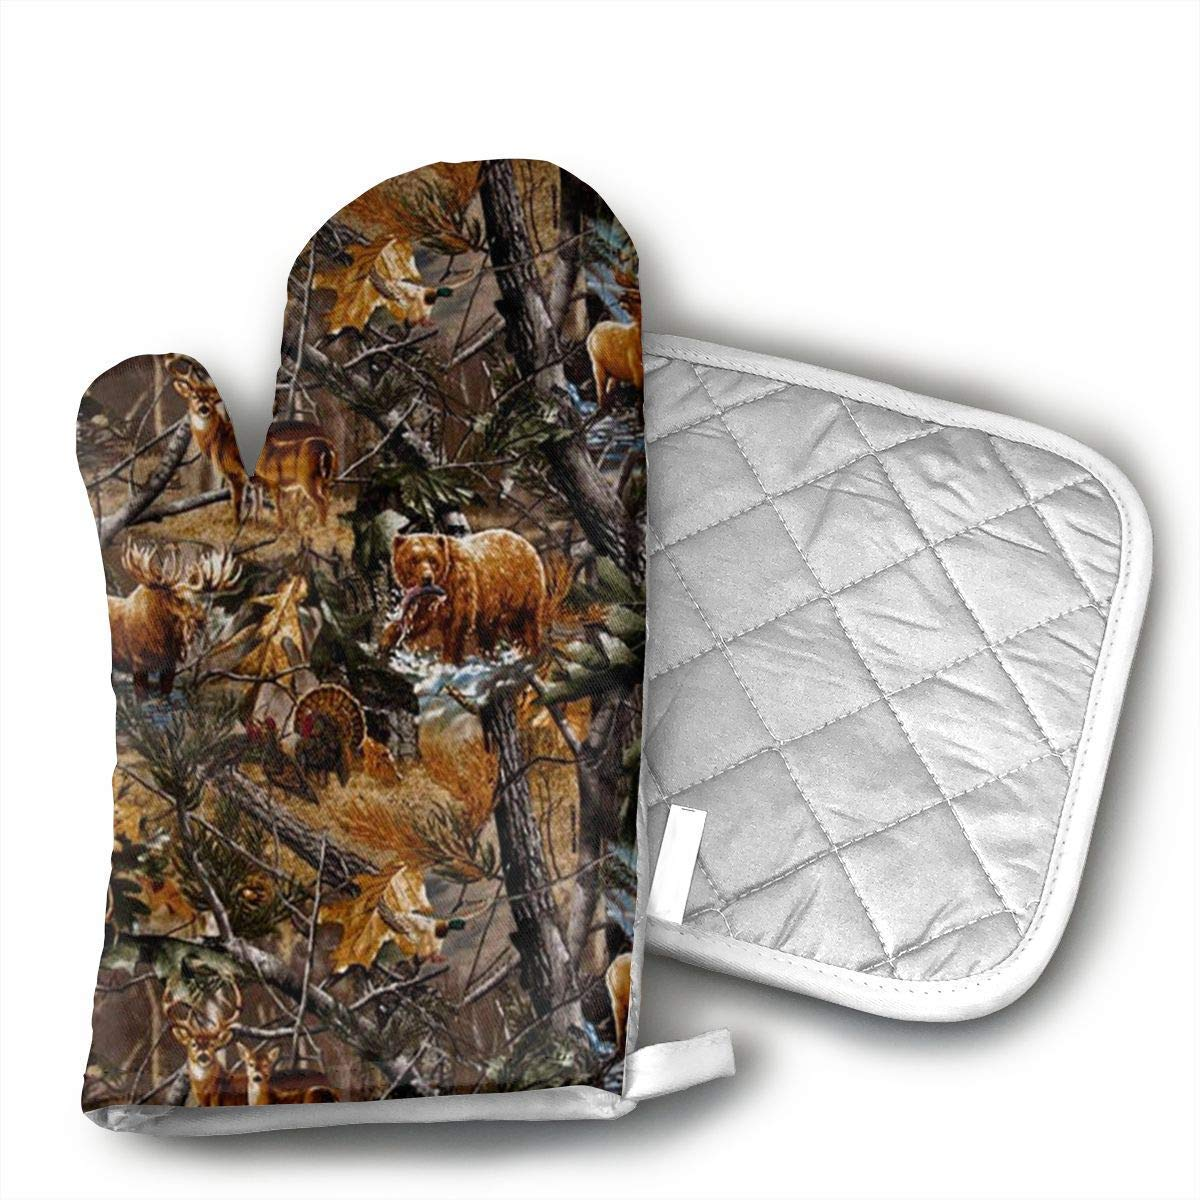 NoveltyGloves Camo Hunting Deer Bear Moose Turkey Duck Oven Mitts,Professional Heat Resistant Microwave BBQ Oven Insulation Thickening Cotton Gloves Baking Pot Mitts Soft Inner Lining Kitchen Cooking